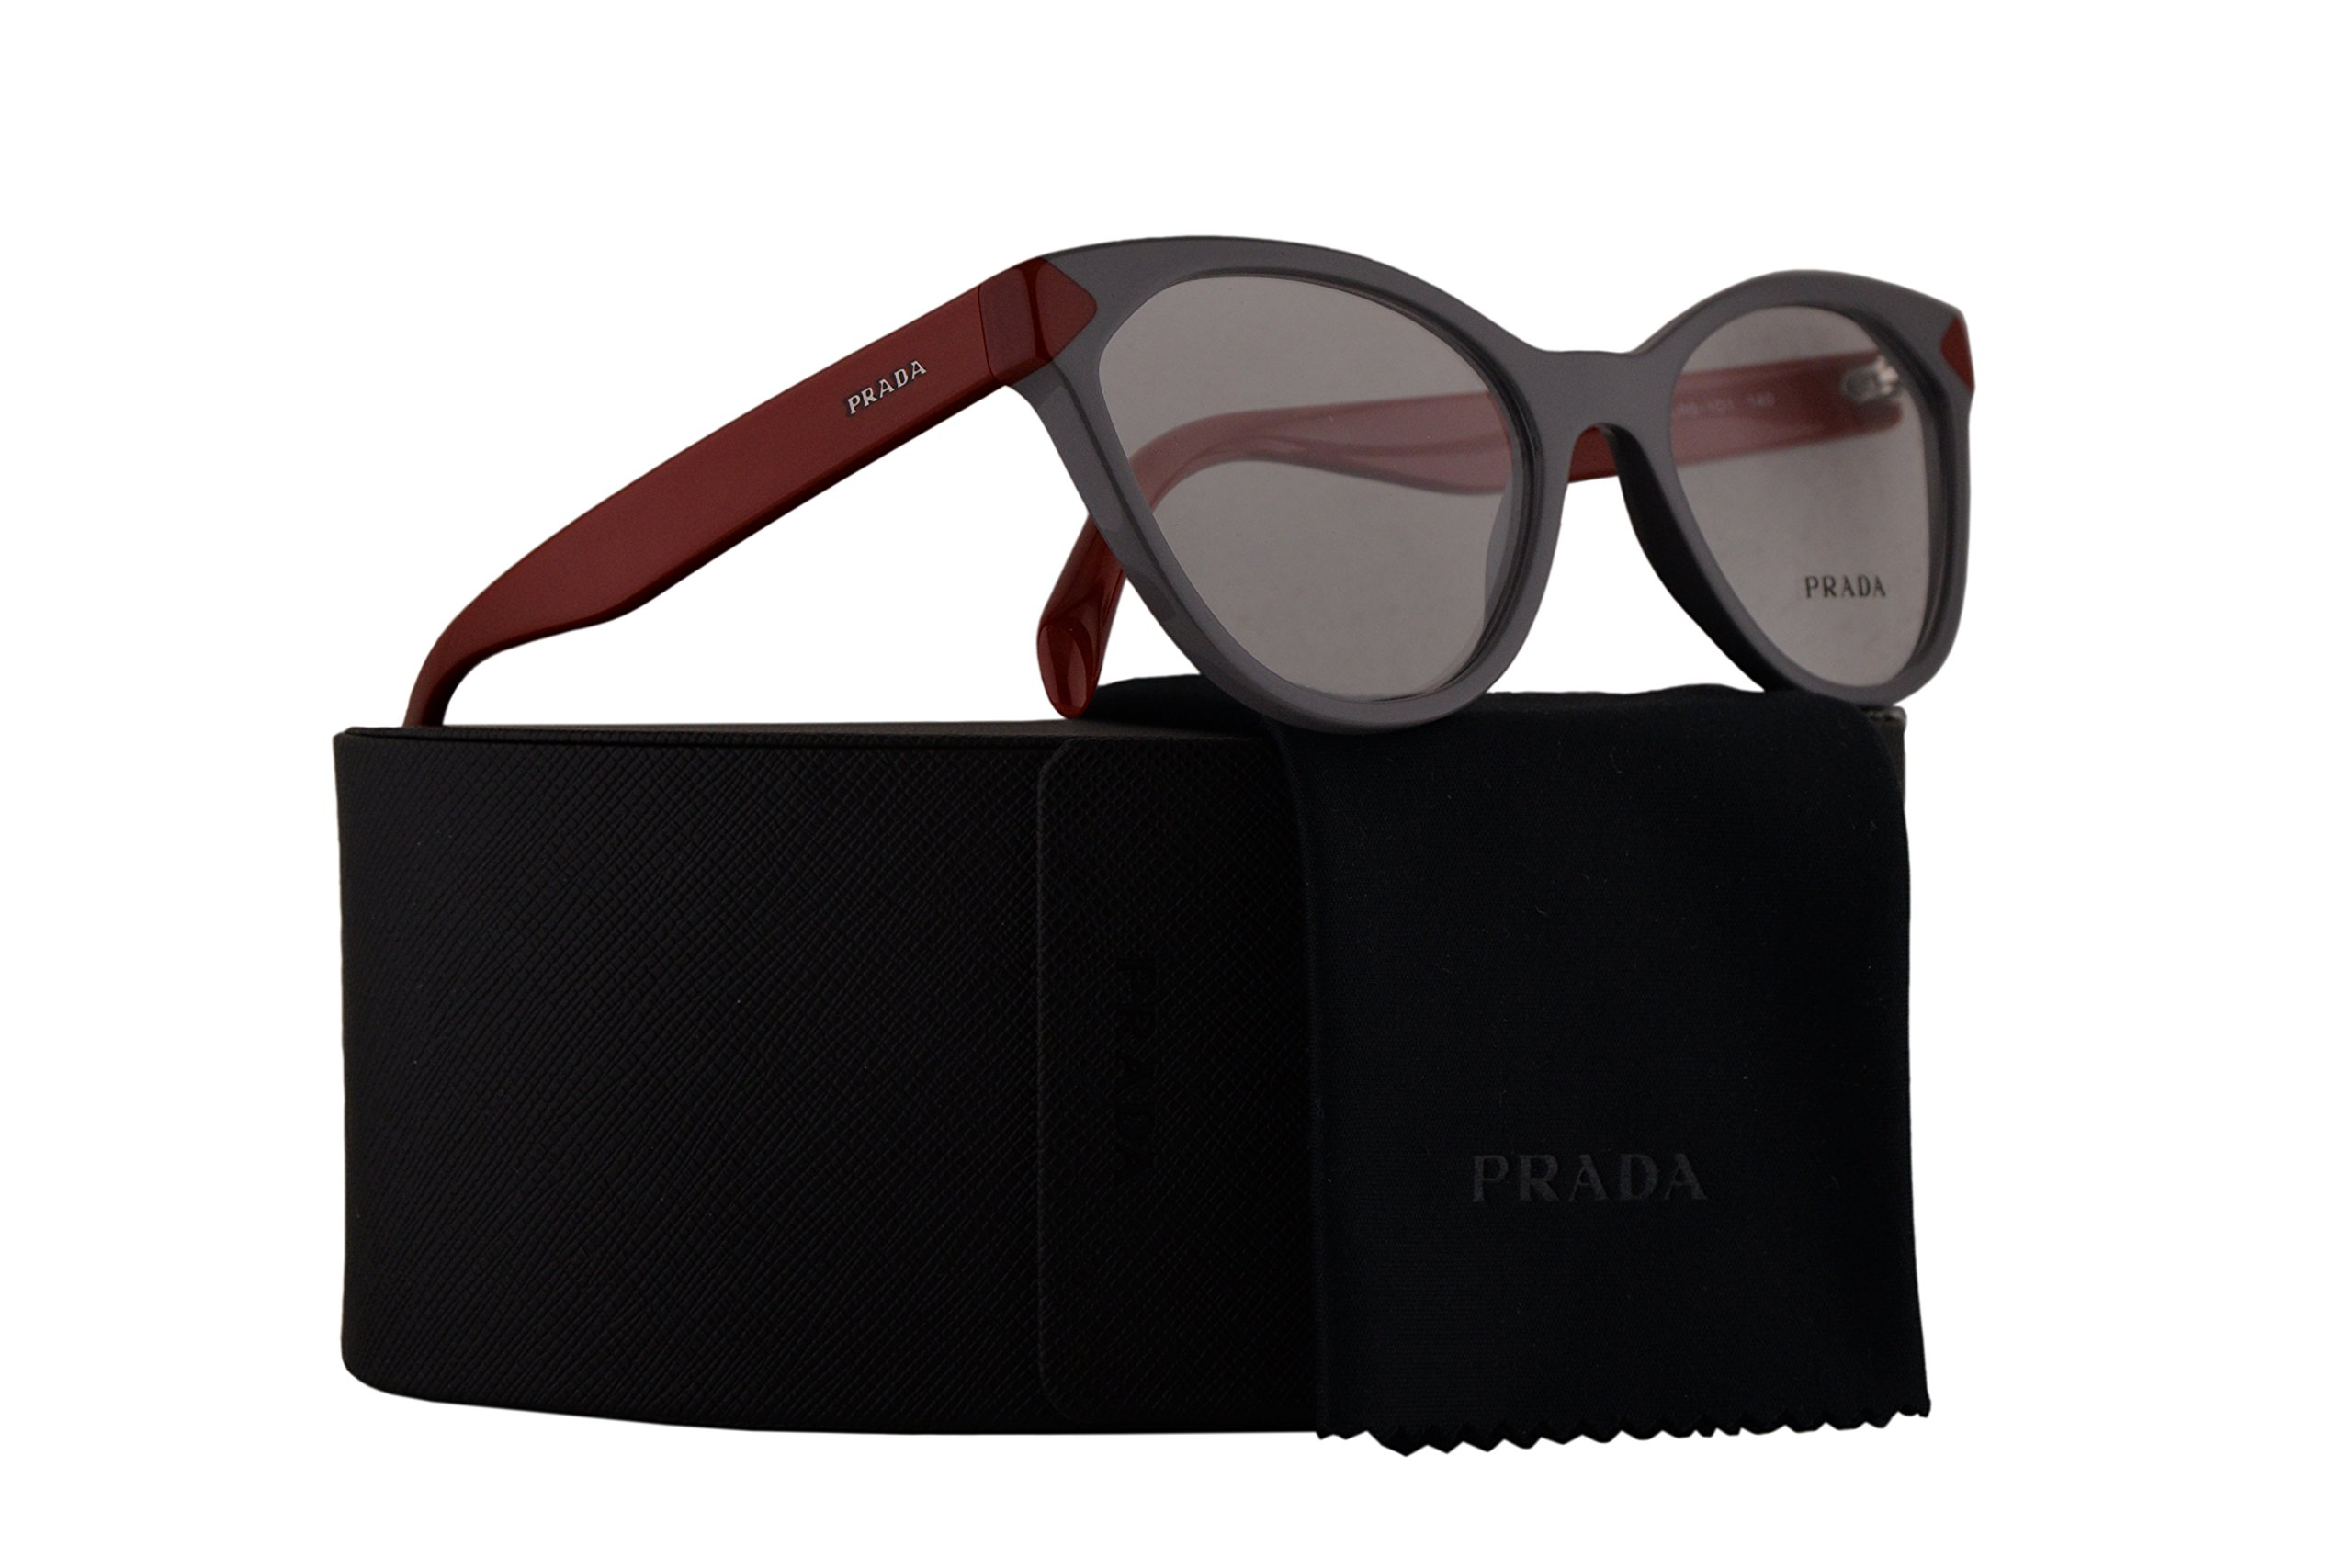 Prada PR02TV Eyeglasses 52-17-140 Grey w/Demo Clear Lens UR91O1 VPR02T VPR 02T PR 02TV